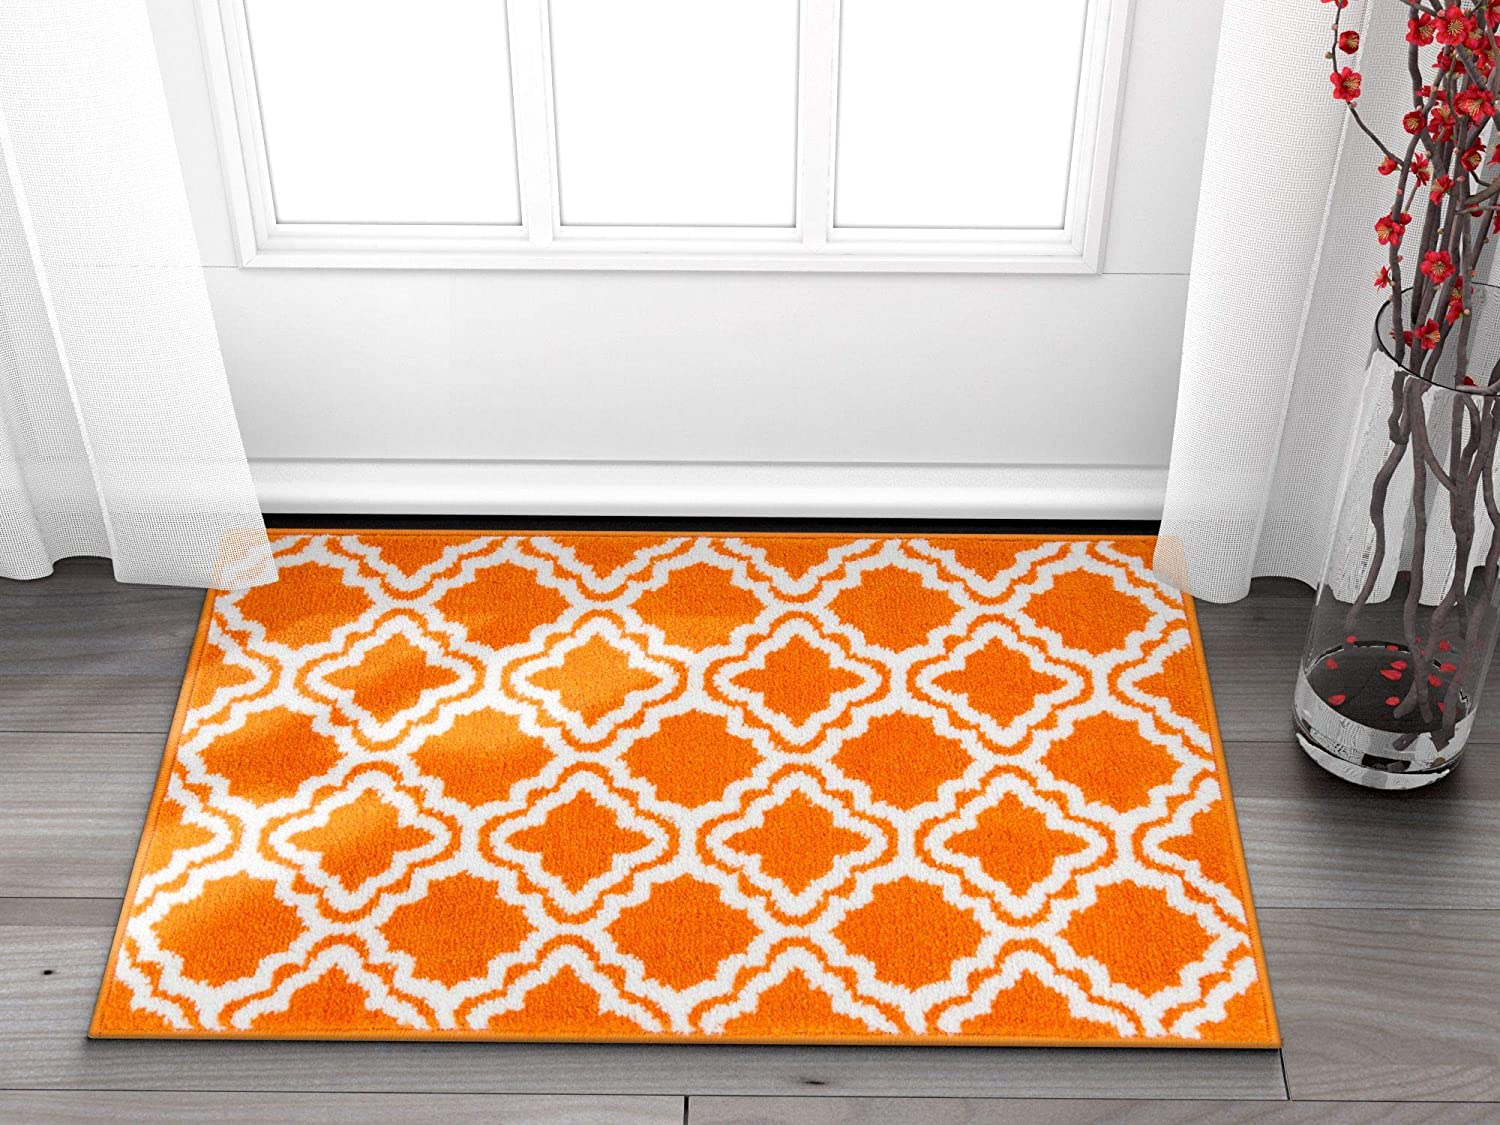 Well Woven Small Rug Mat Doormat Modern Kids Room Kitchen Rug Calipso orange 1'8  x 2'7  Lattice Trellis Accent Area Rug Entry Way Bright Carpet Bathroom Soft Durable